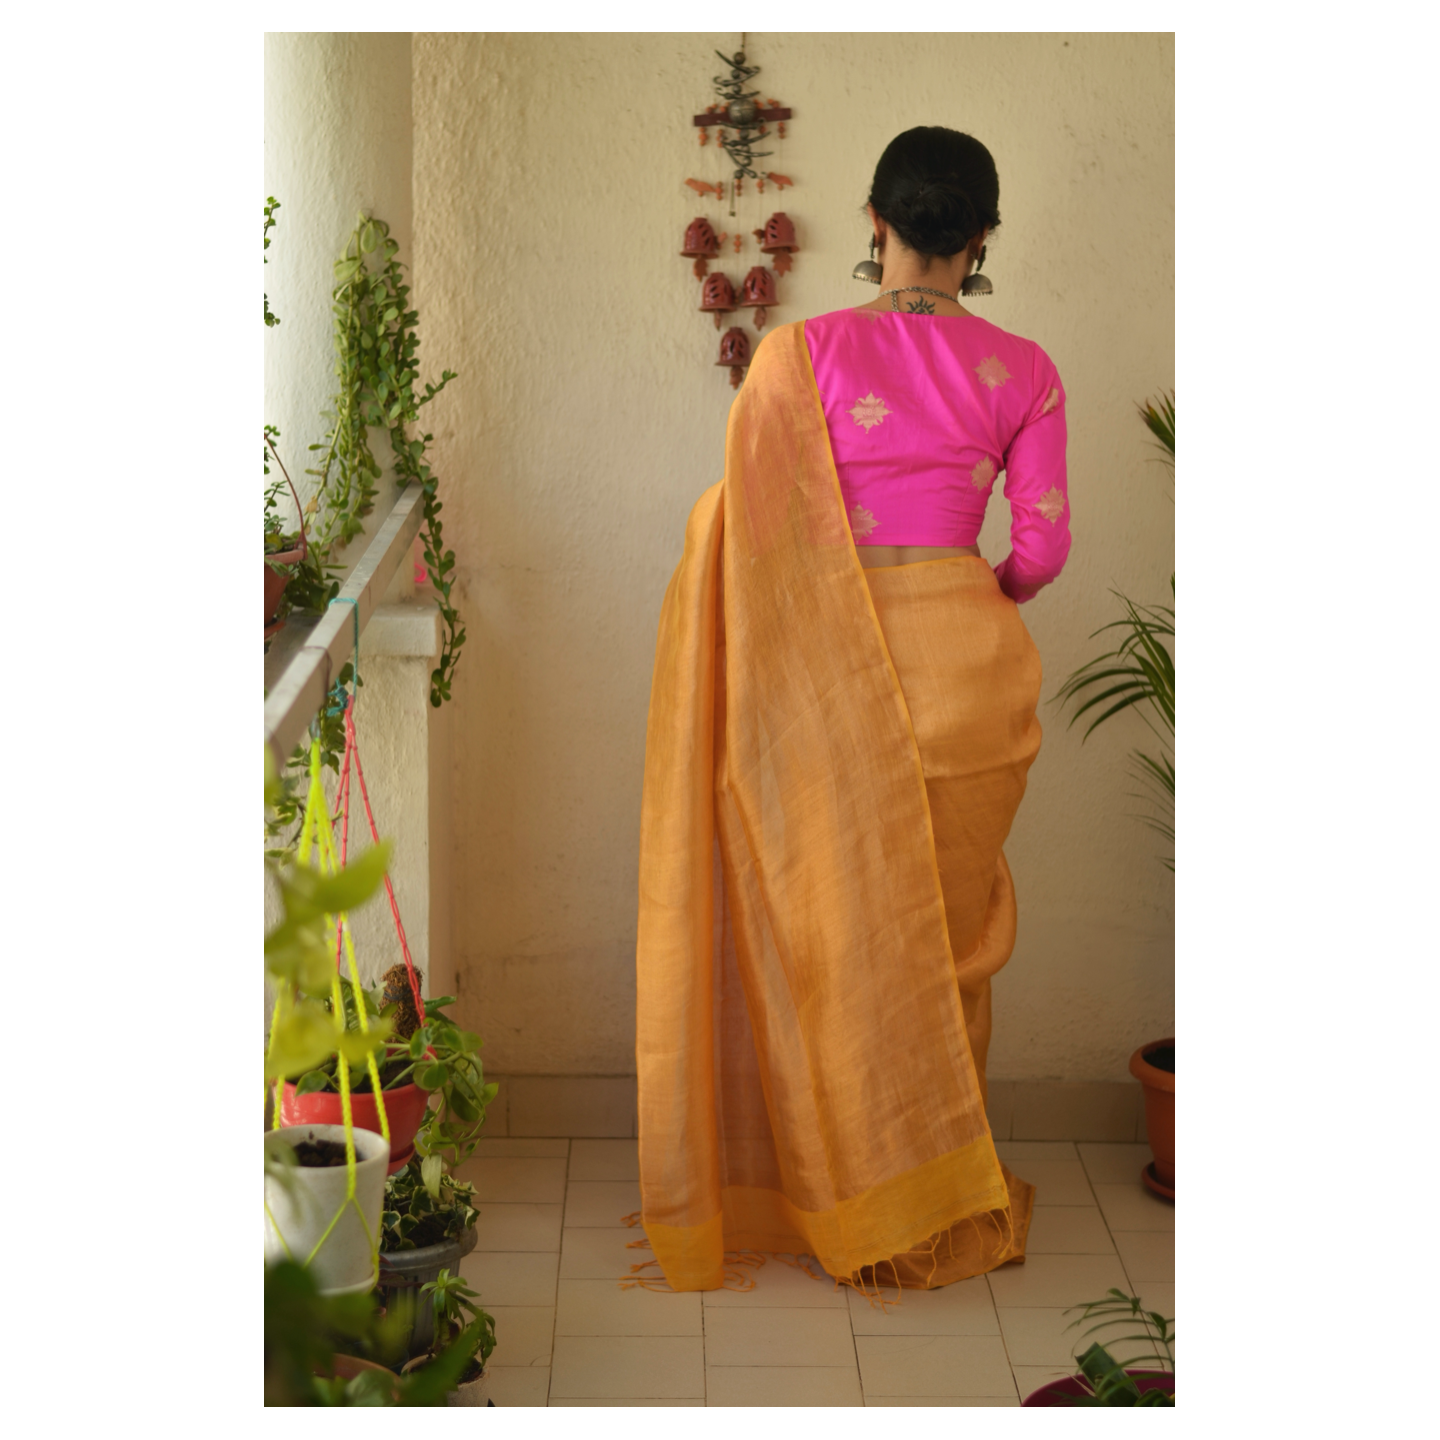 Handloom Twill linen saree blended with tissue.